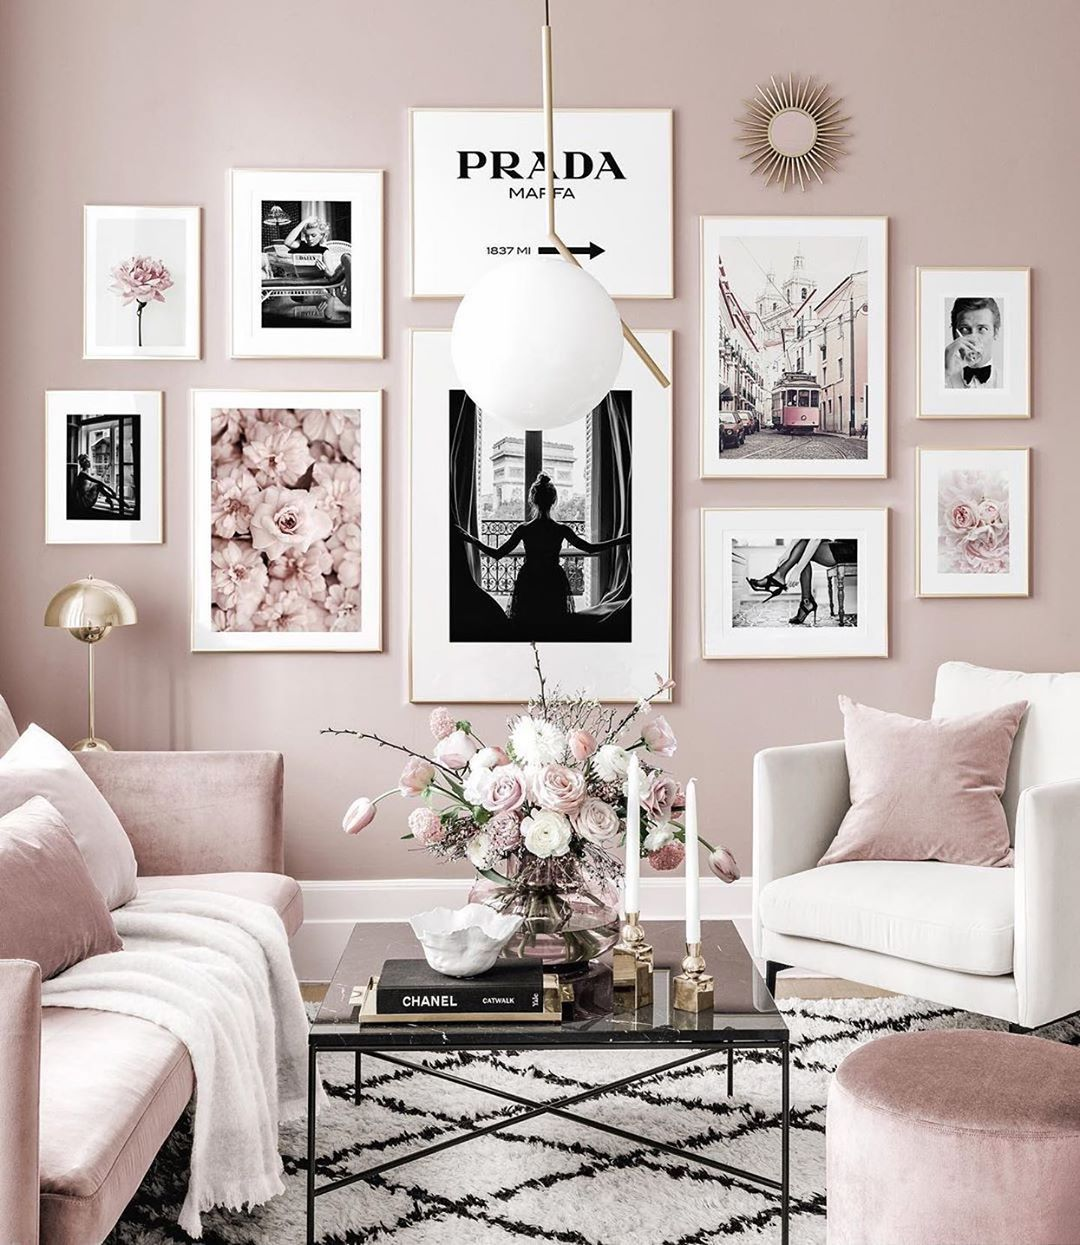 Interiors Home Decor Ideas On Instagram Beautiful Living Room With Posters Decor The Easies In 2020 Pink Living Room Living Room Decor Gallery Wall Inspiration